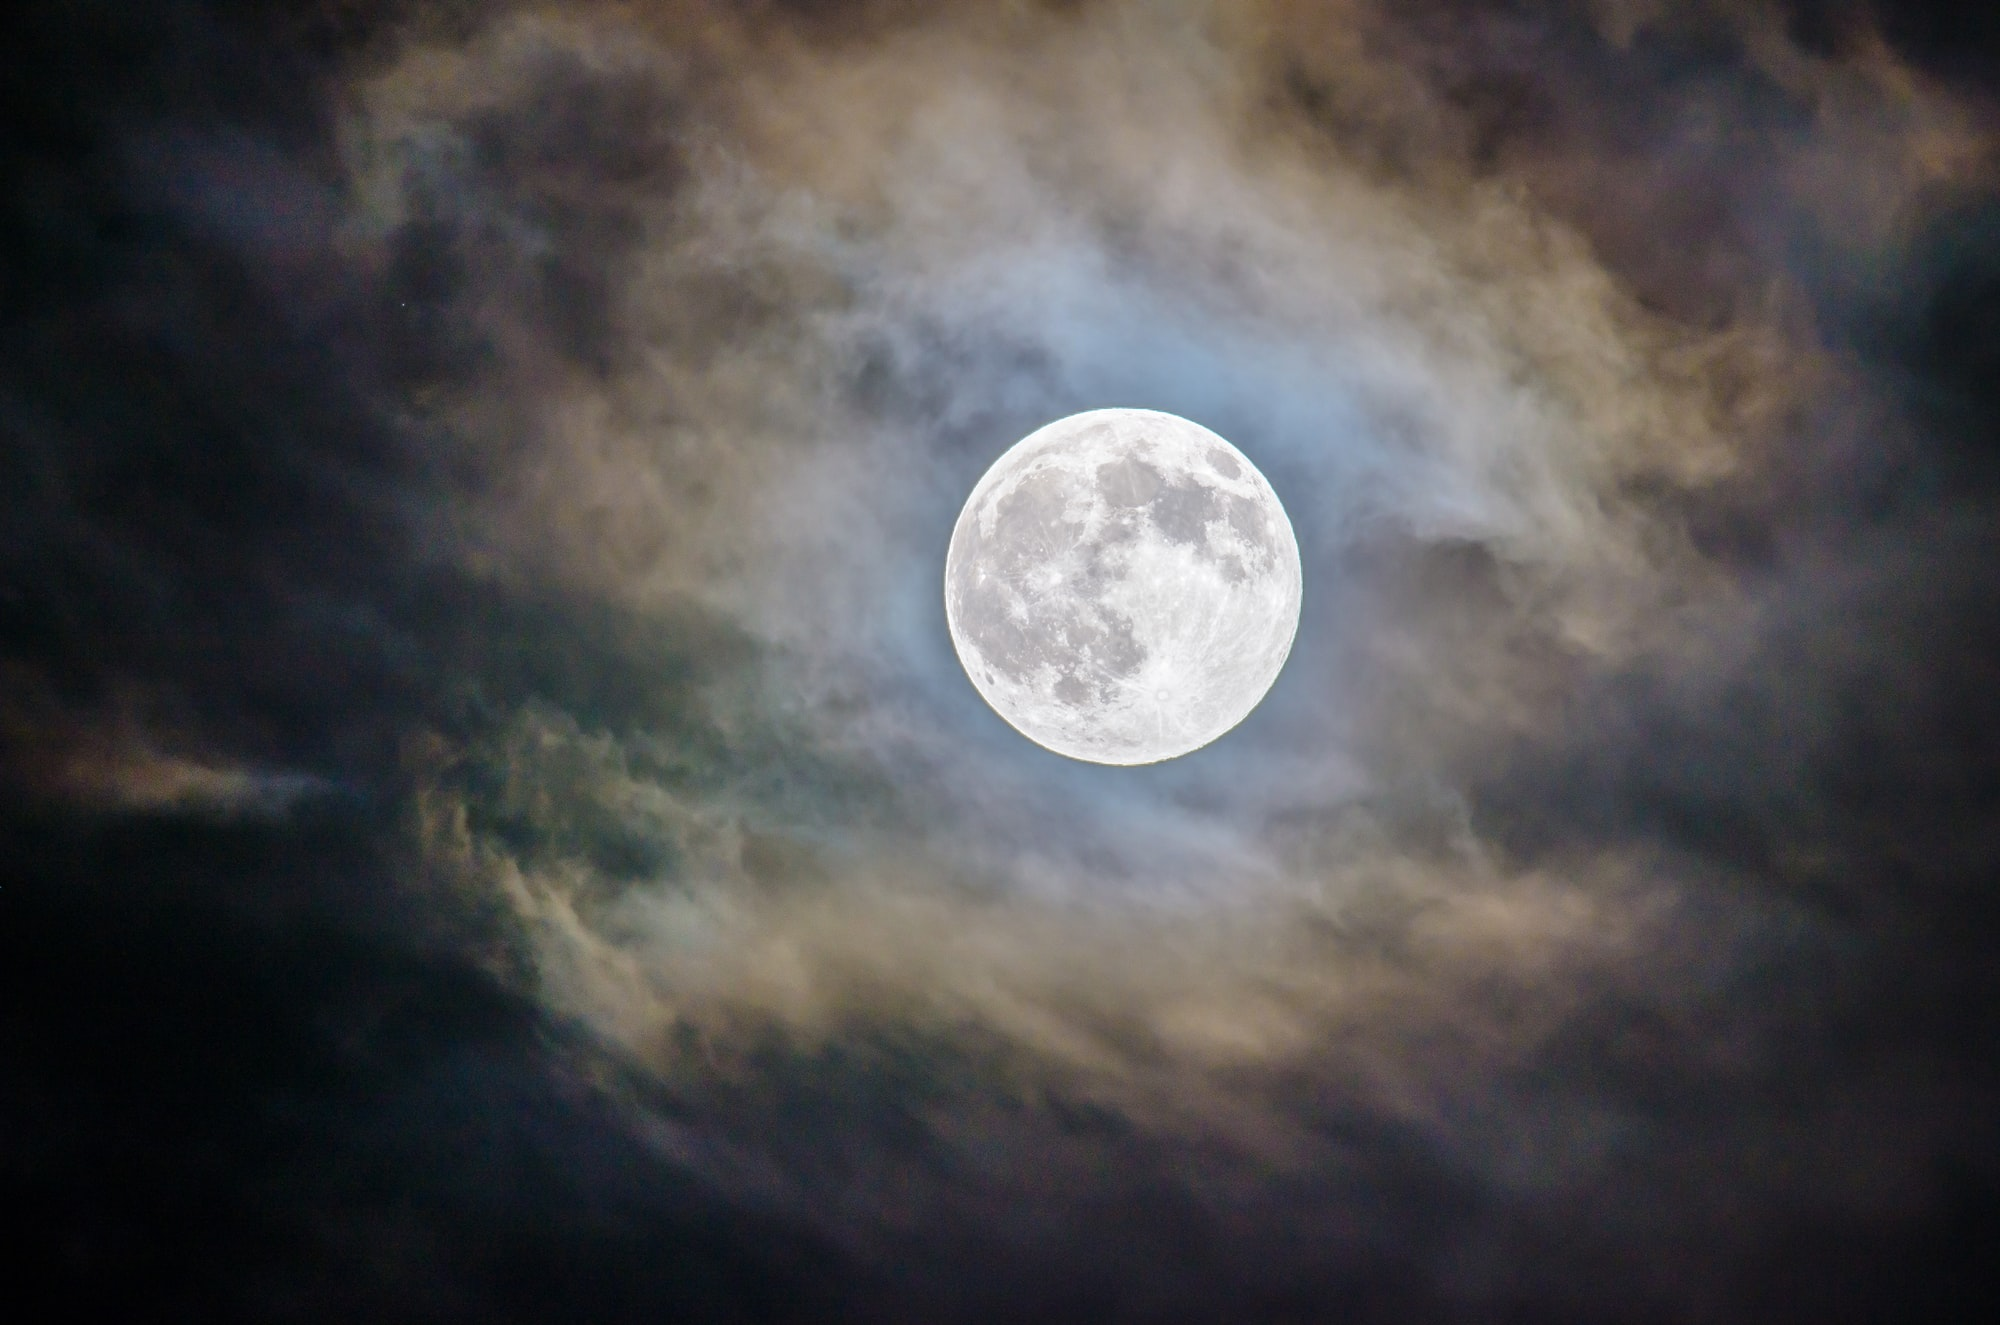 Clear image of a full moon in the night sky surrounded by fuzzy clouds.